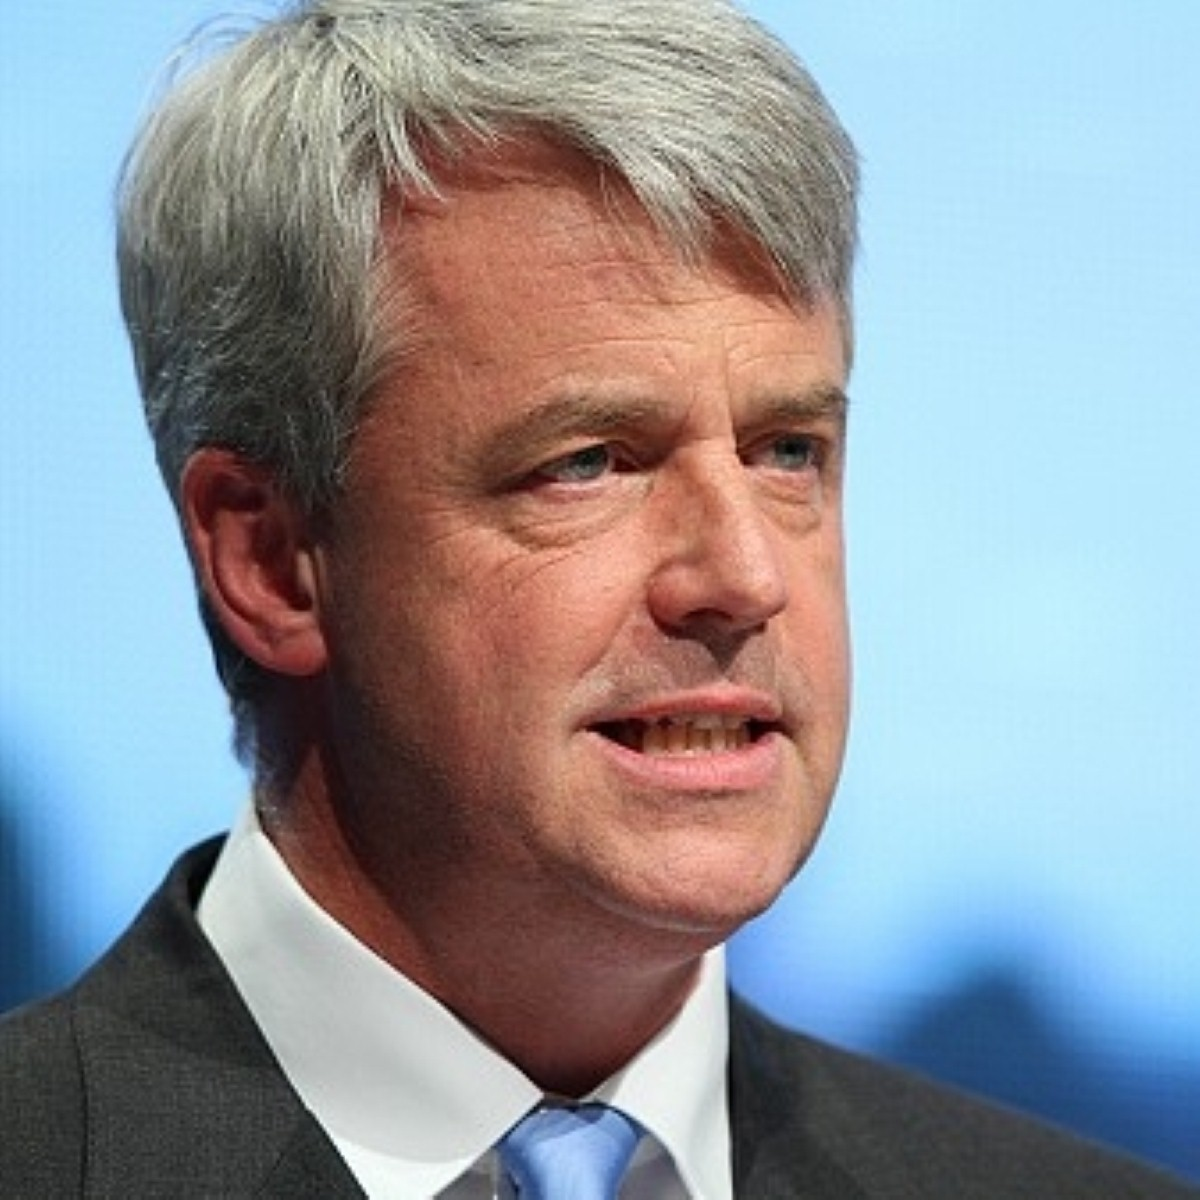 Not a good day for Andrew Lansley